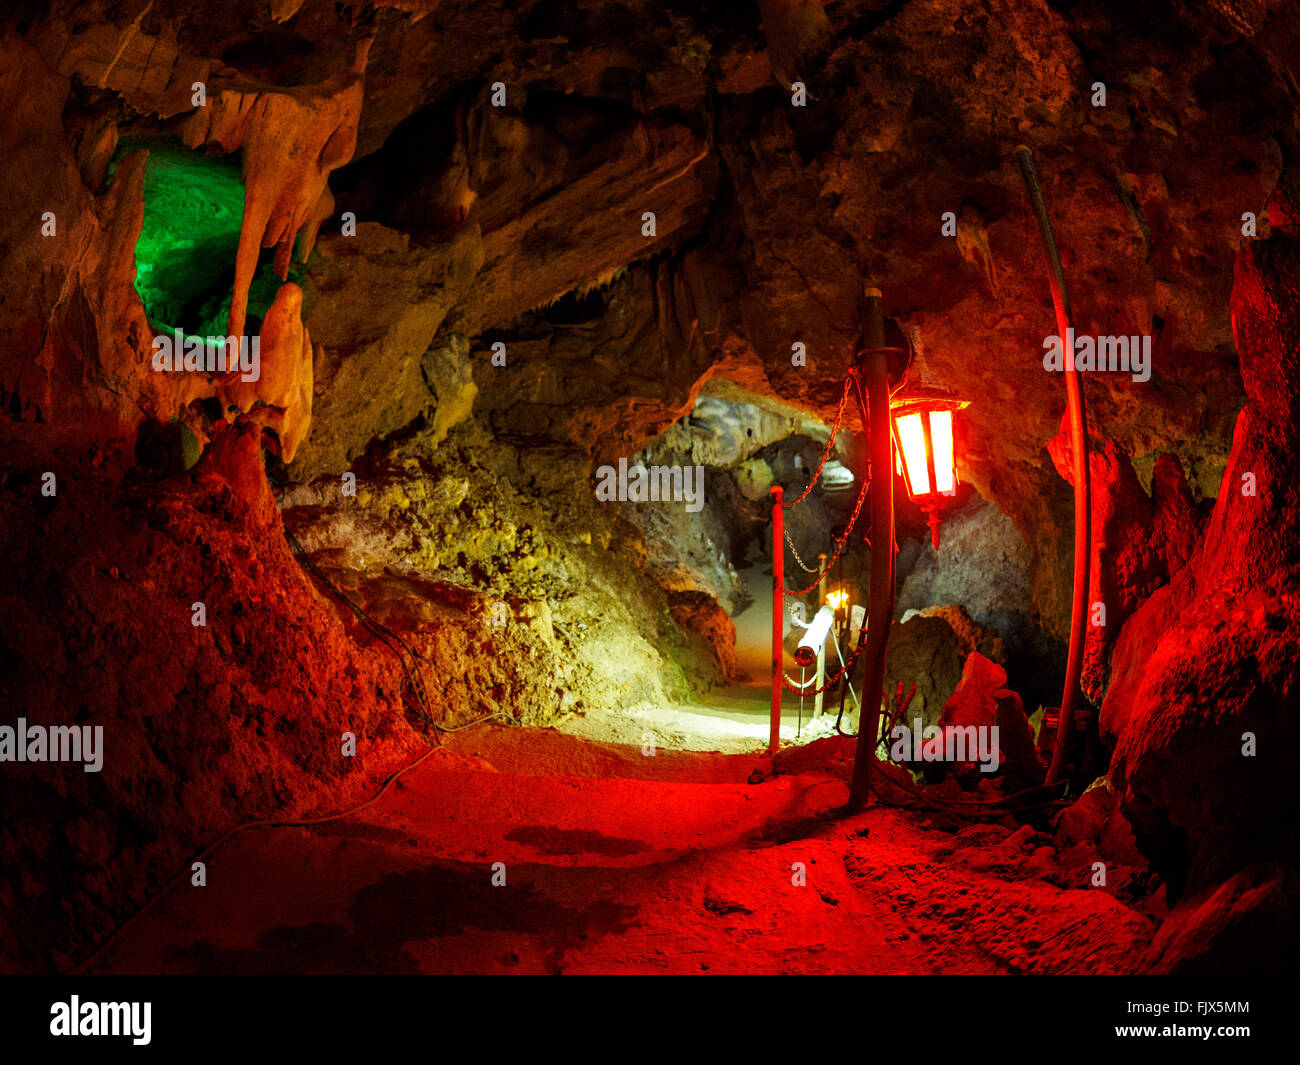 Illuminated Lantern In Cave - Stock Image